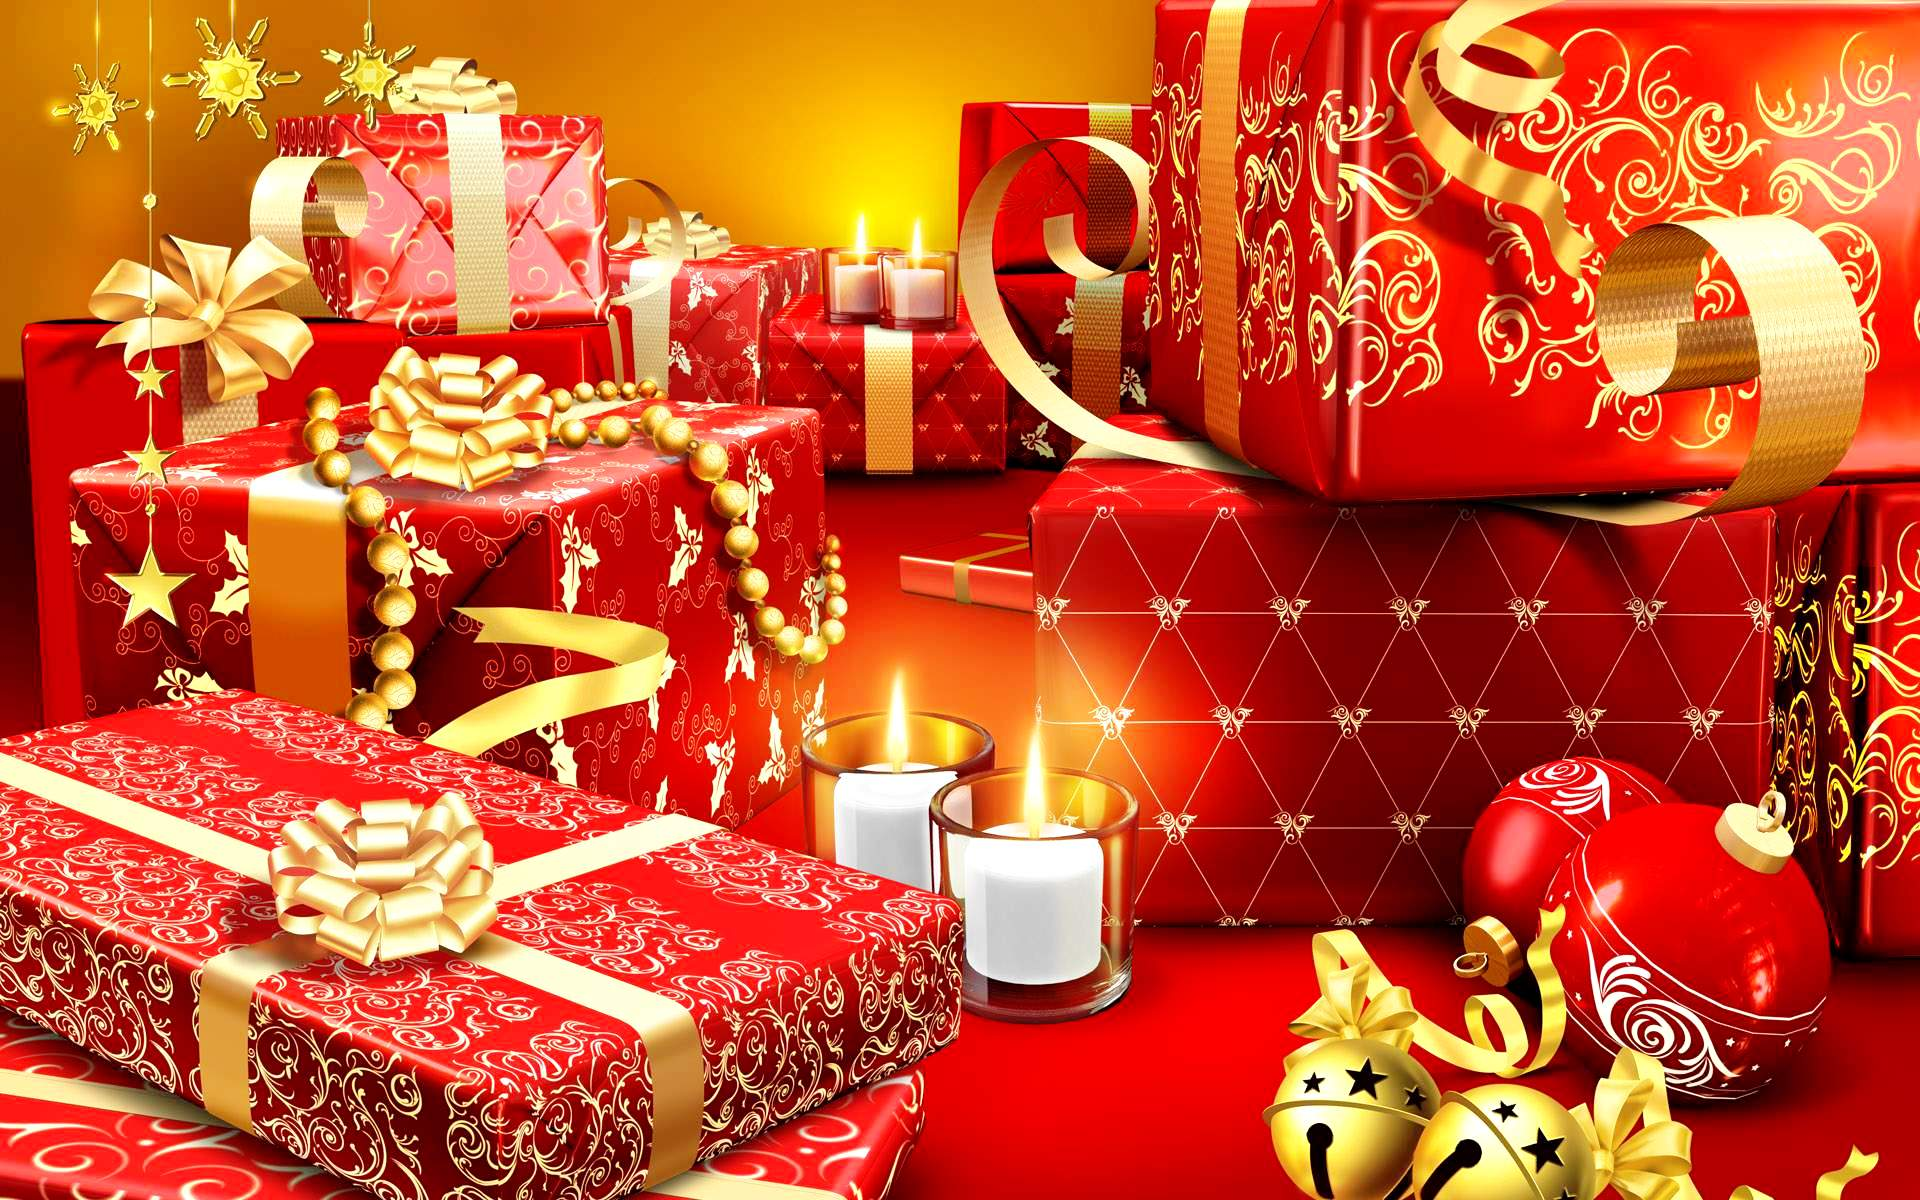 Wallpapers Download Animated Christmas Wallpapers Download 1920x1200